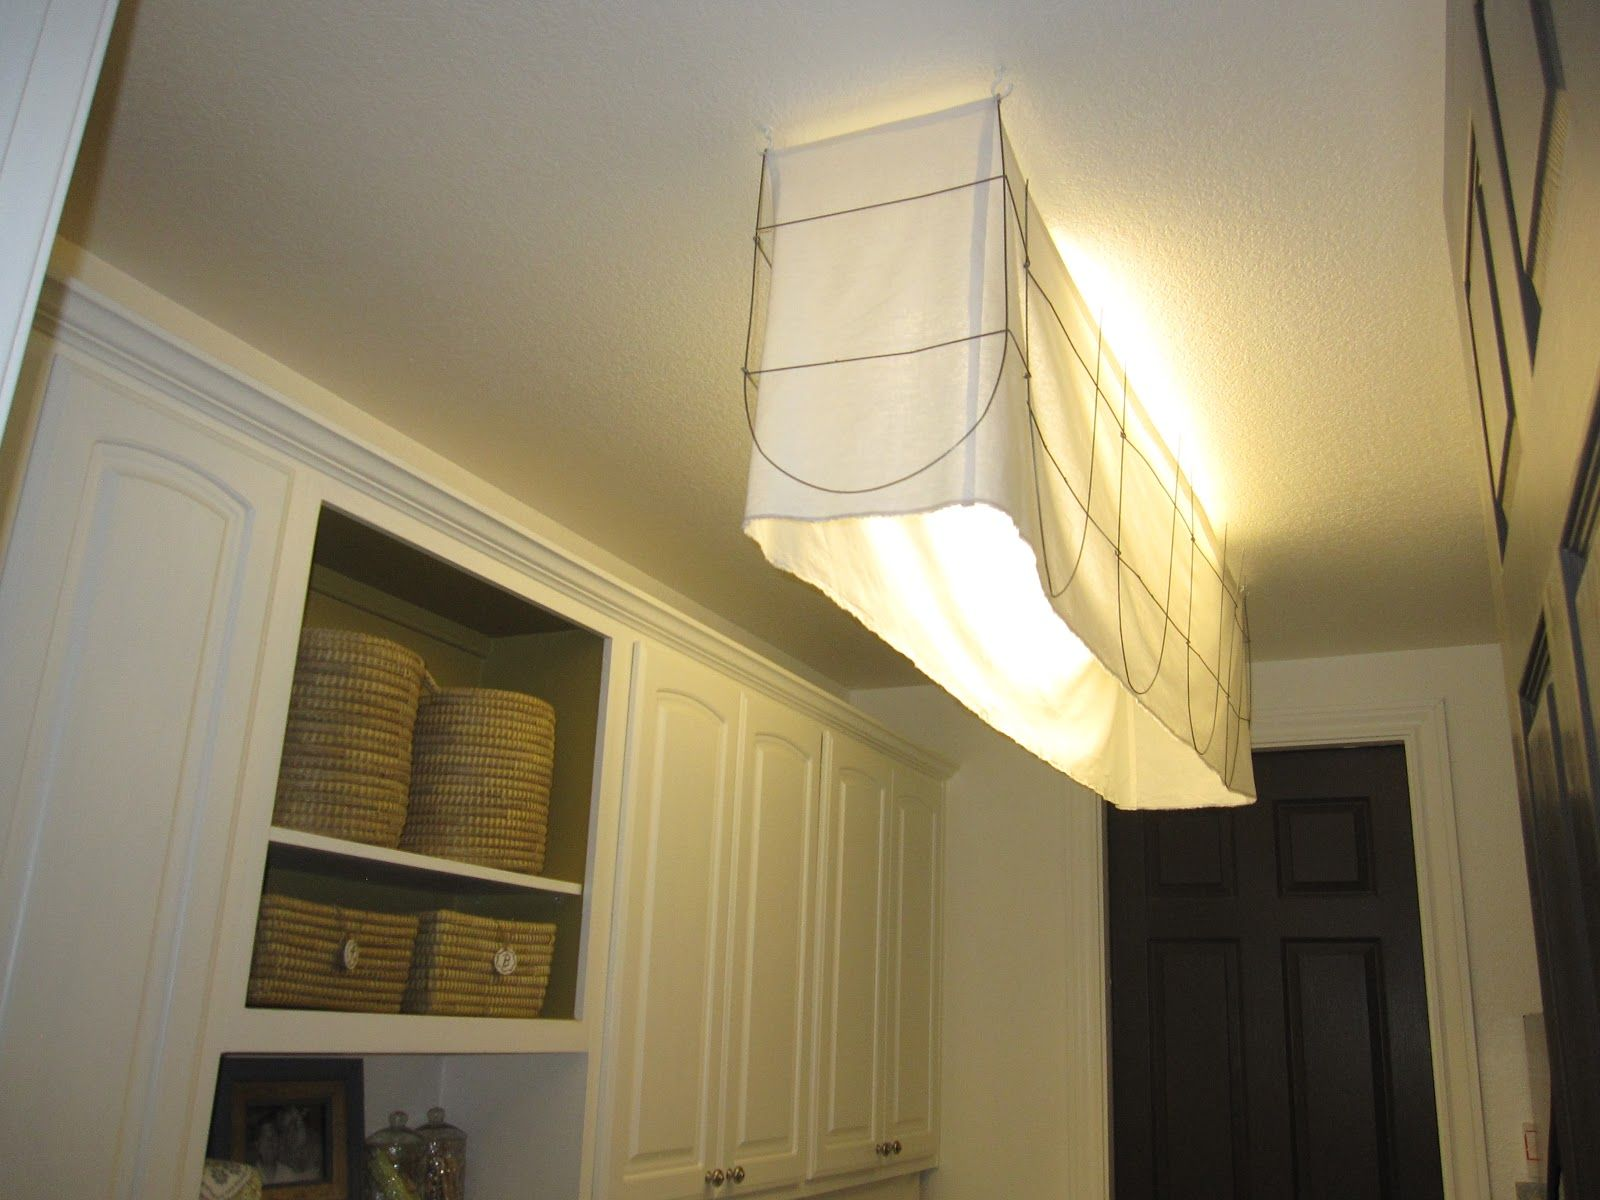 How to cover an ungly fluorescent light fixture how to cover an ungly fluorescent light fixture thedecoratingduchess arubaitofo Image collections